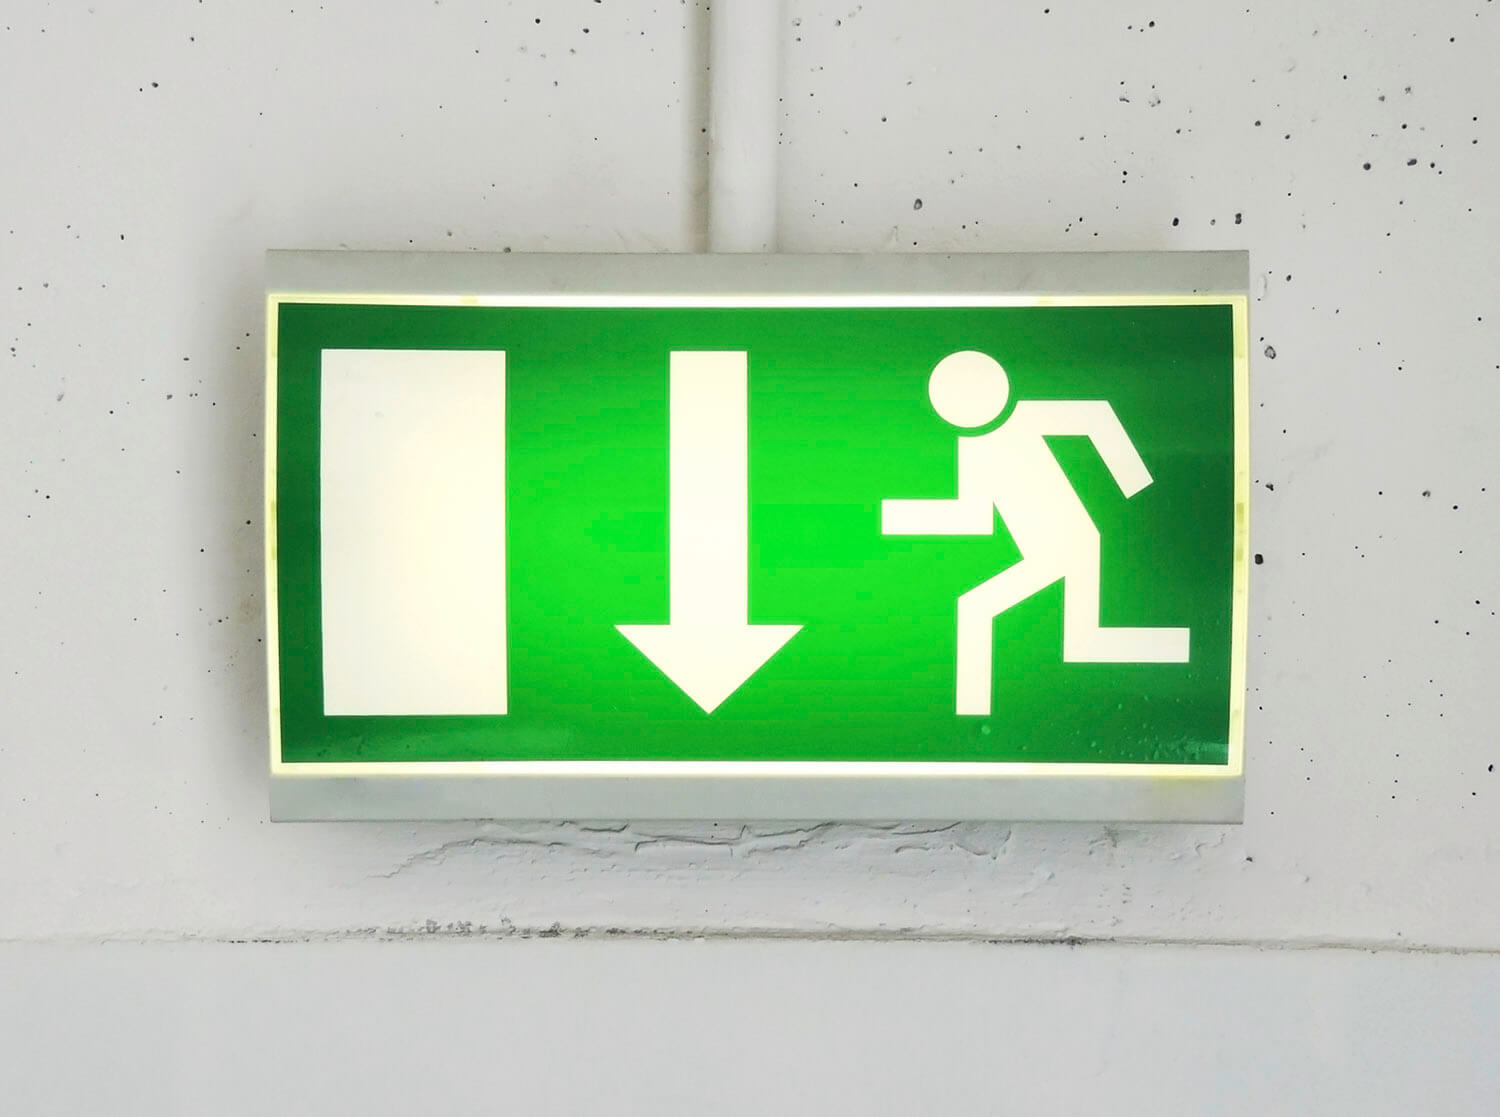 Exit or emergency exit sign